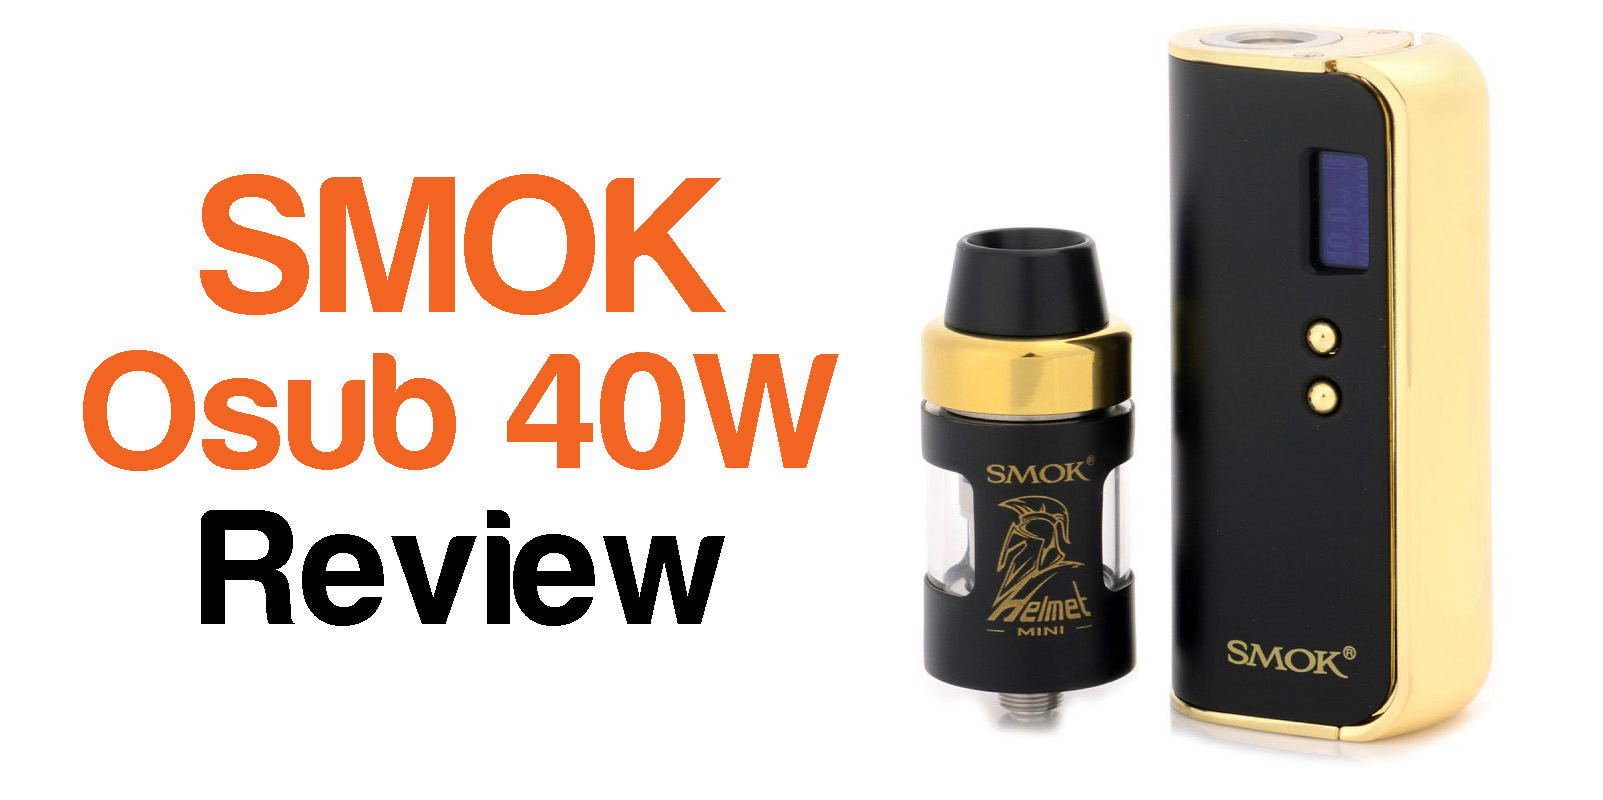 smok osub 40 kit review